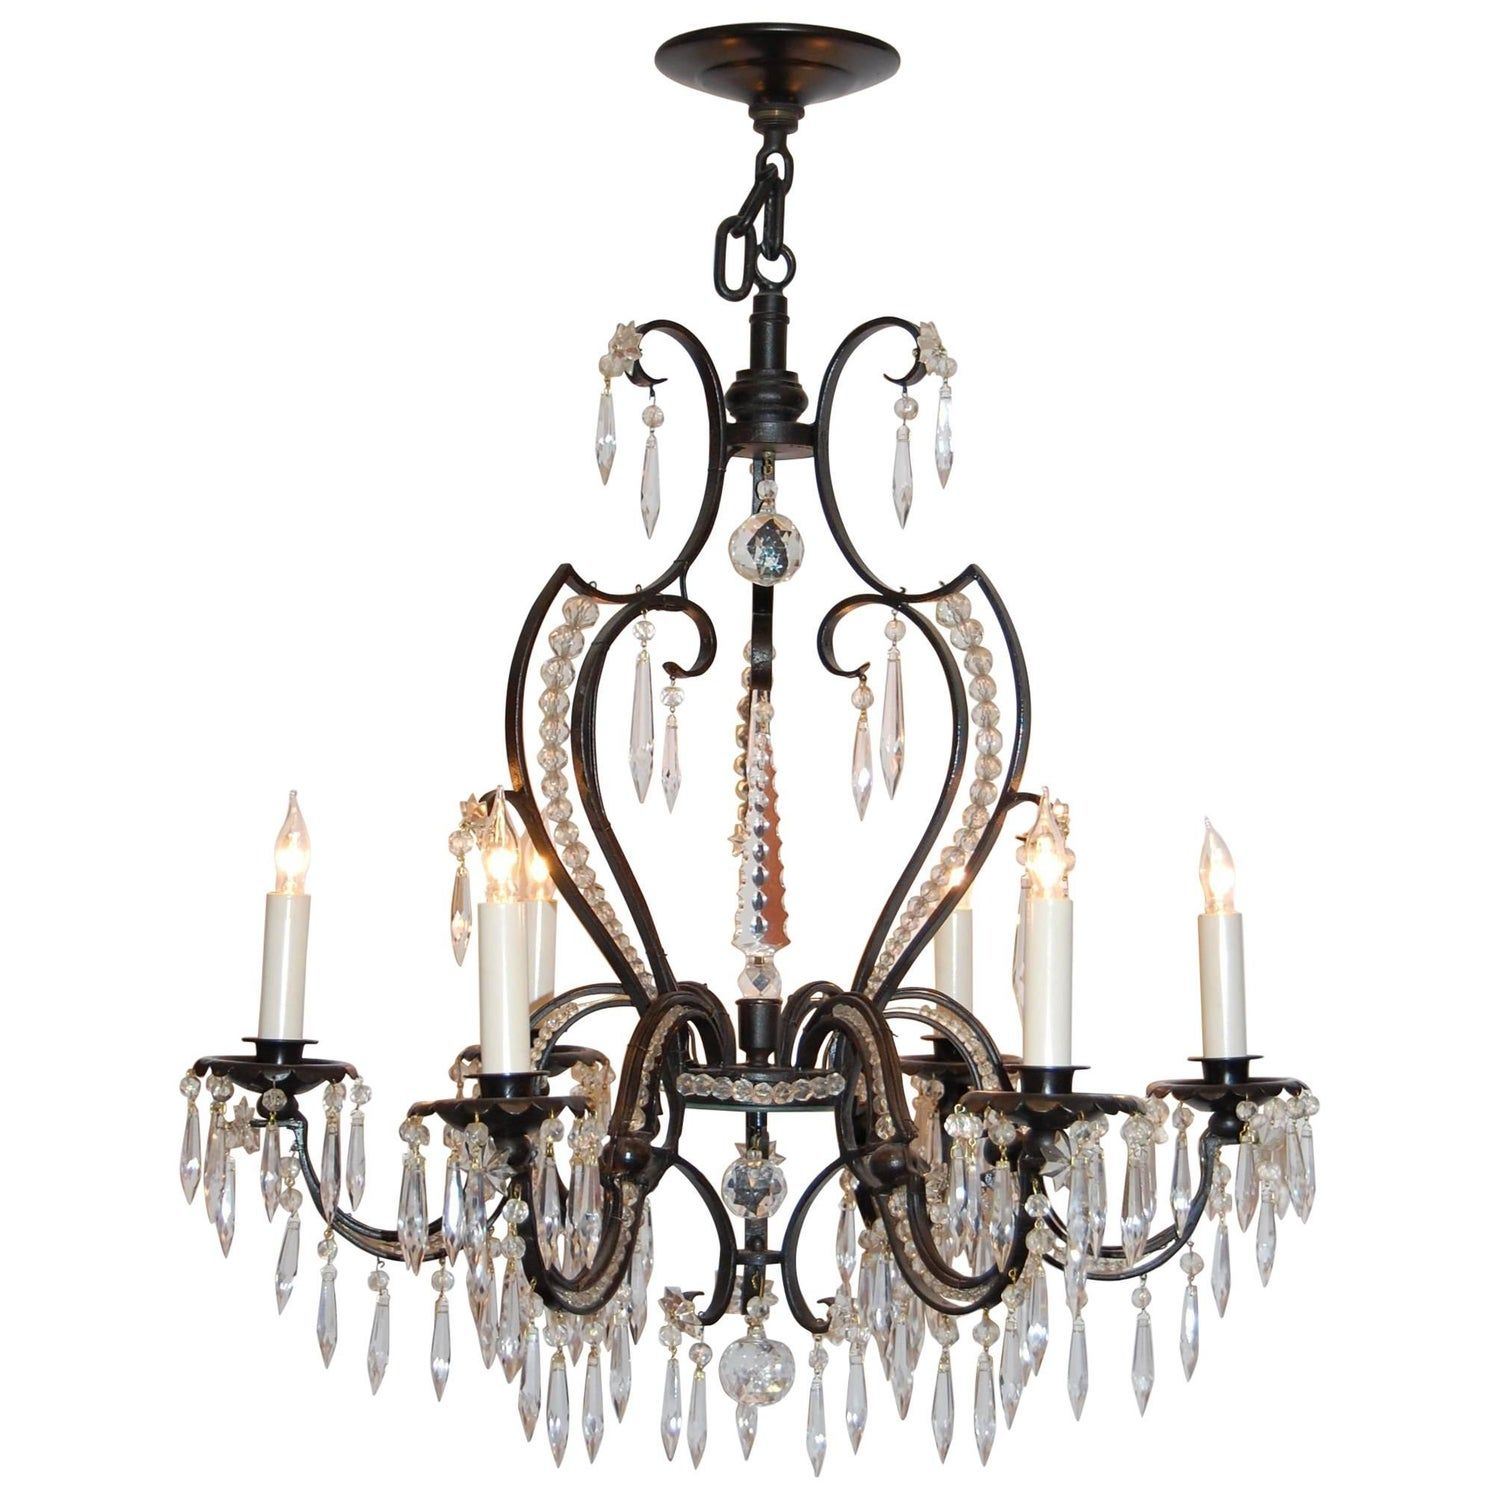 Iron And Crystal Six Light Chandelier Circa 1920s 1930s In 2020 Chandelier Lighting Chandelier Pendant Lights Painting Light Fixtures